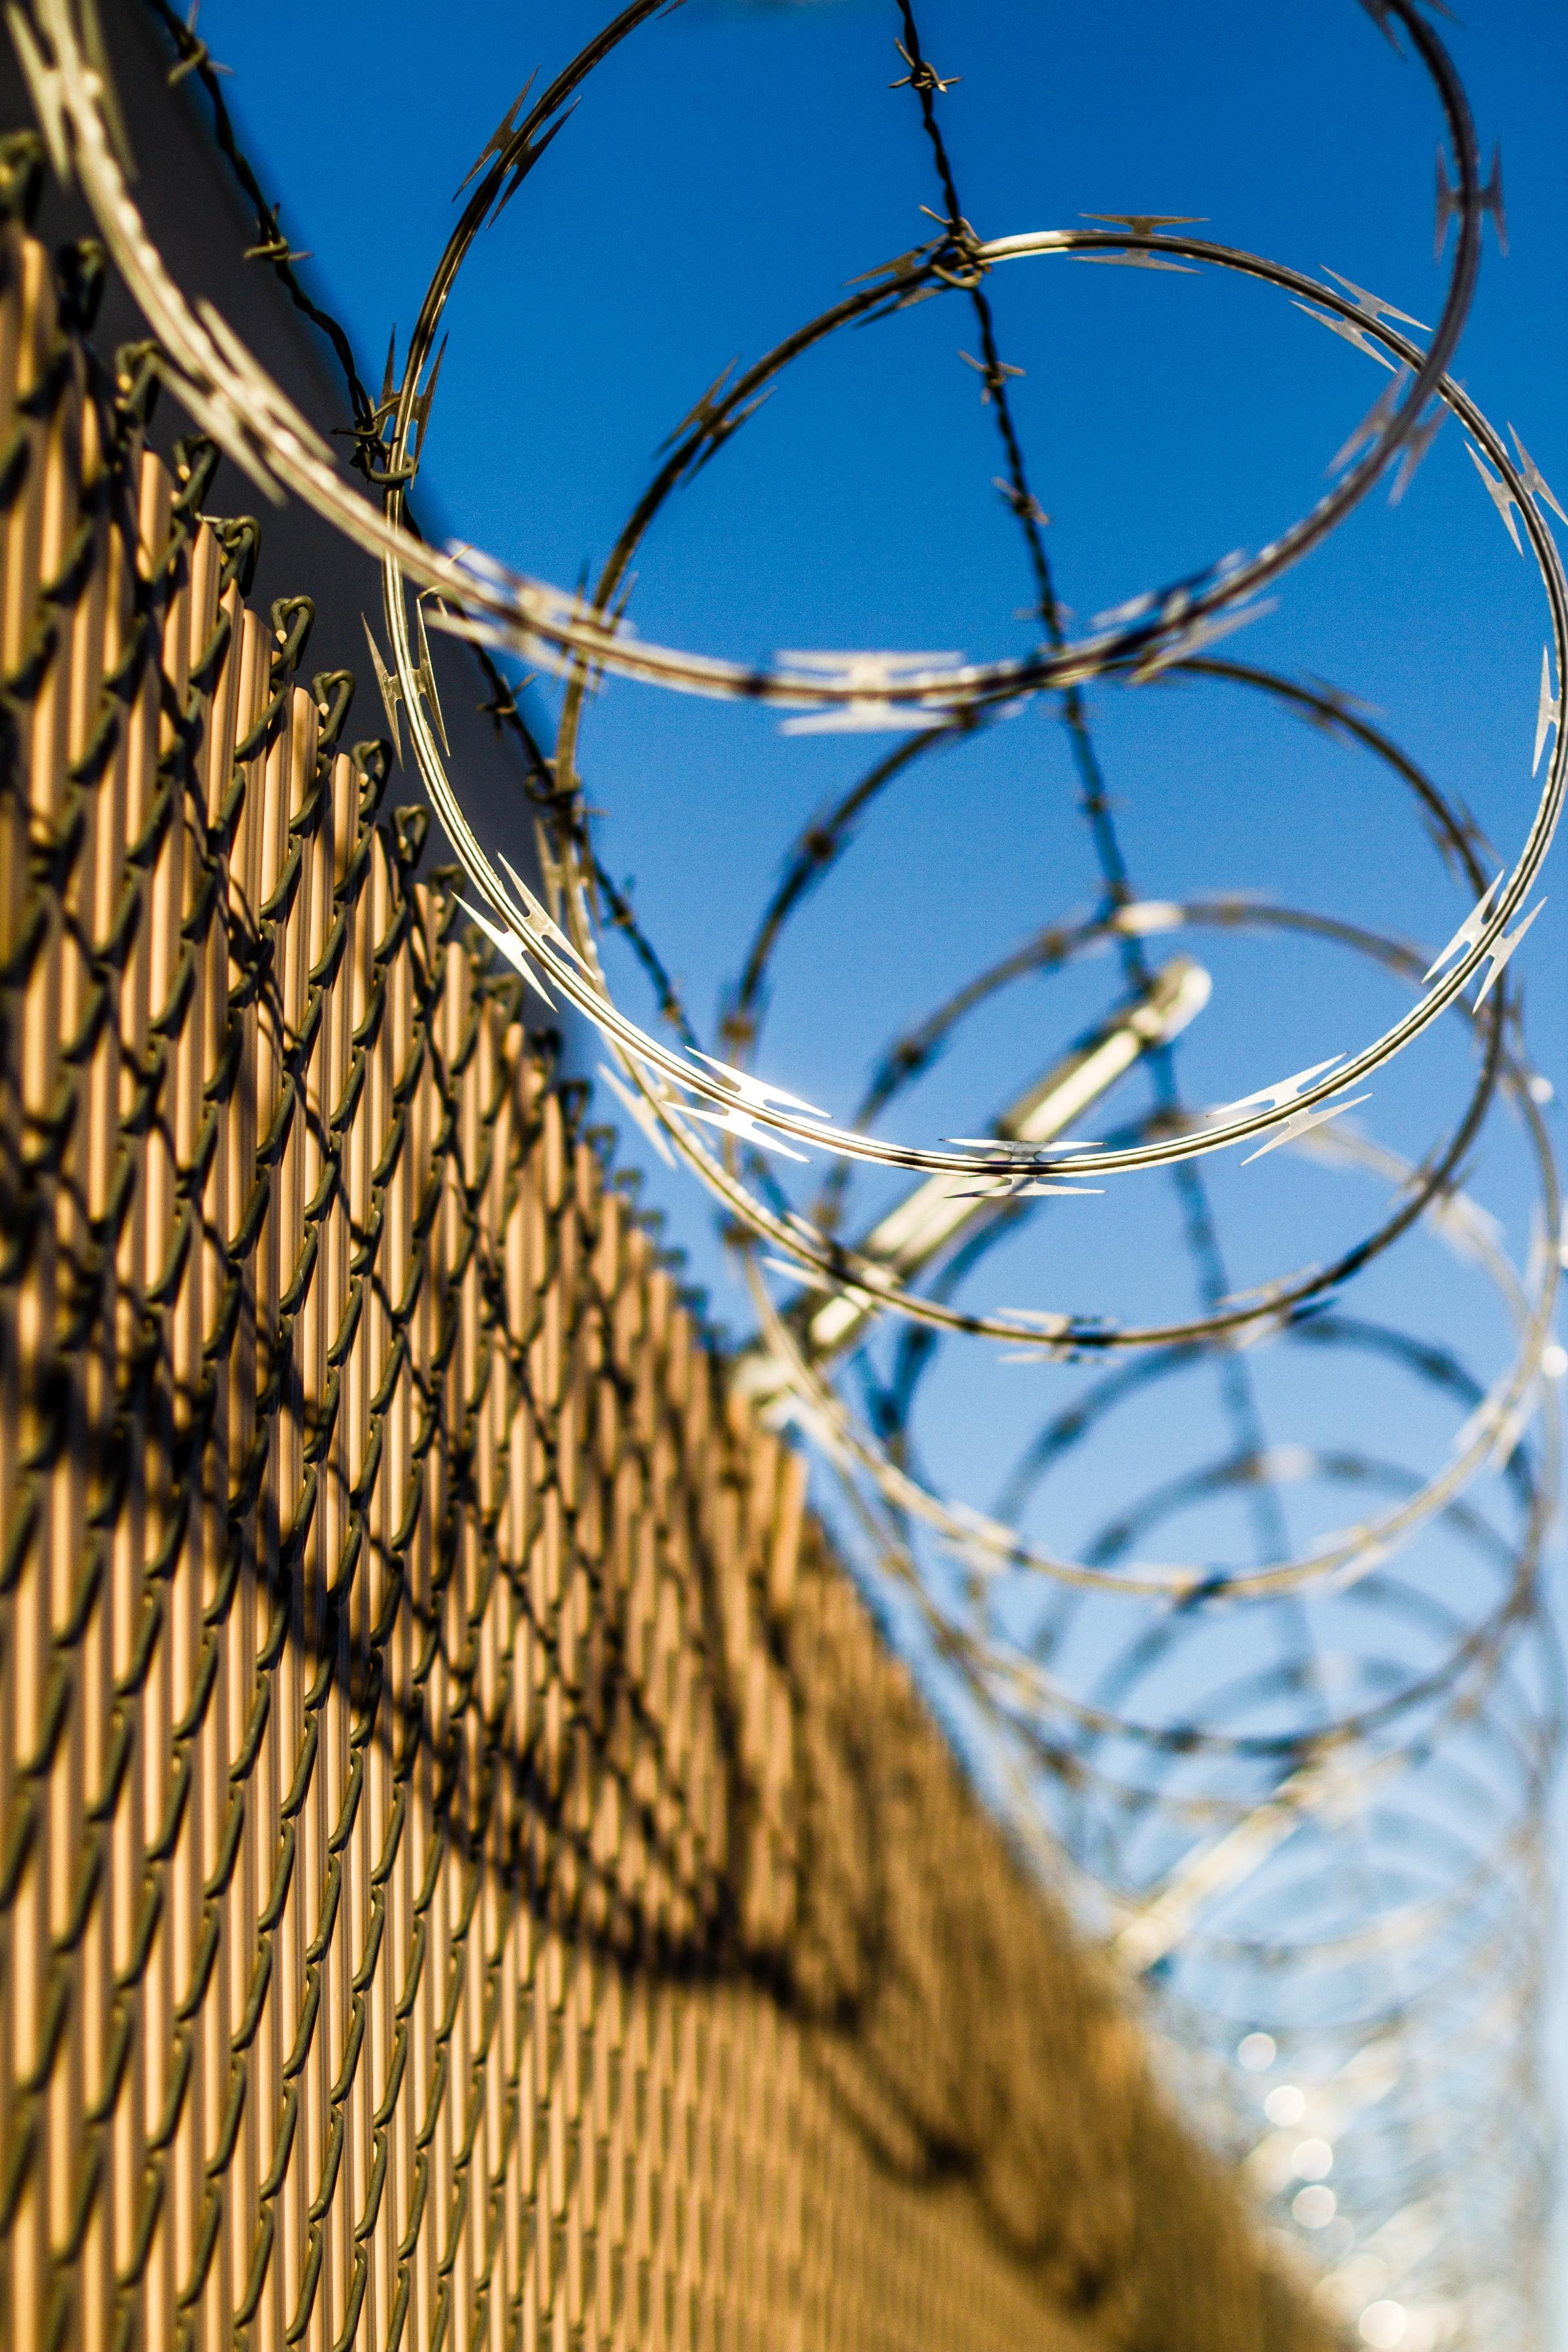 Very ill inmates could be paroled under House bill | Michigan Radio